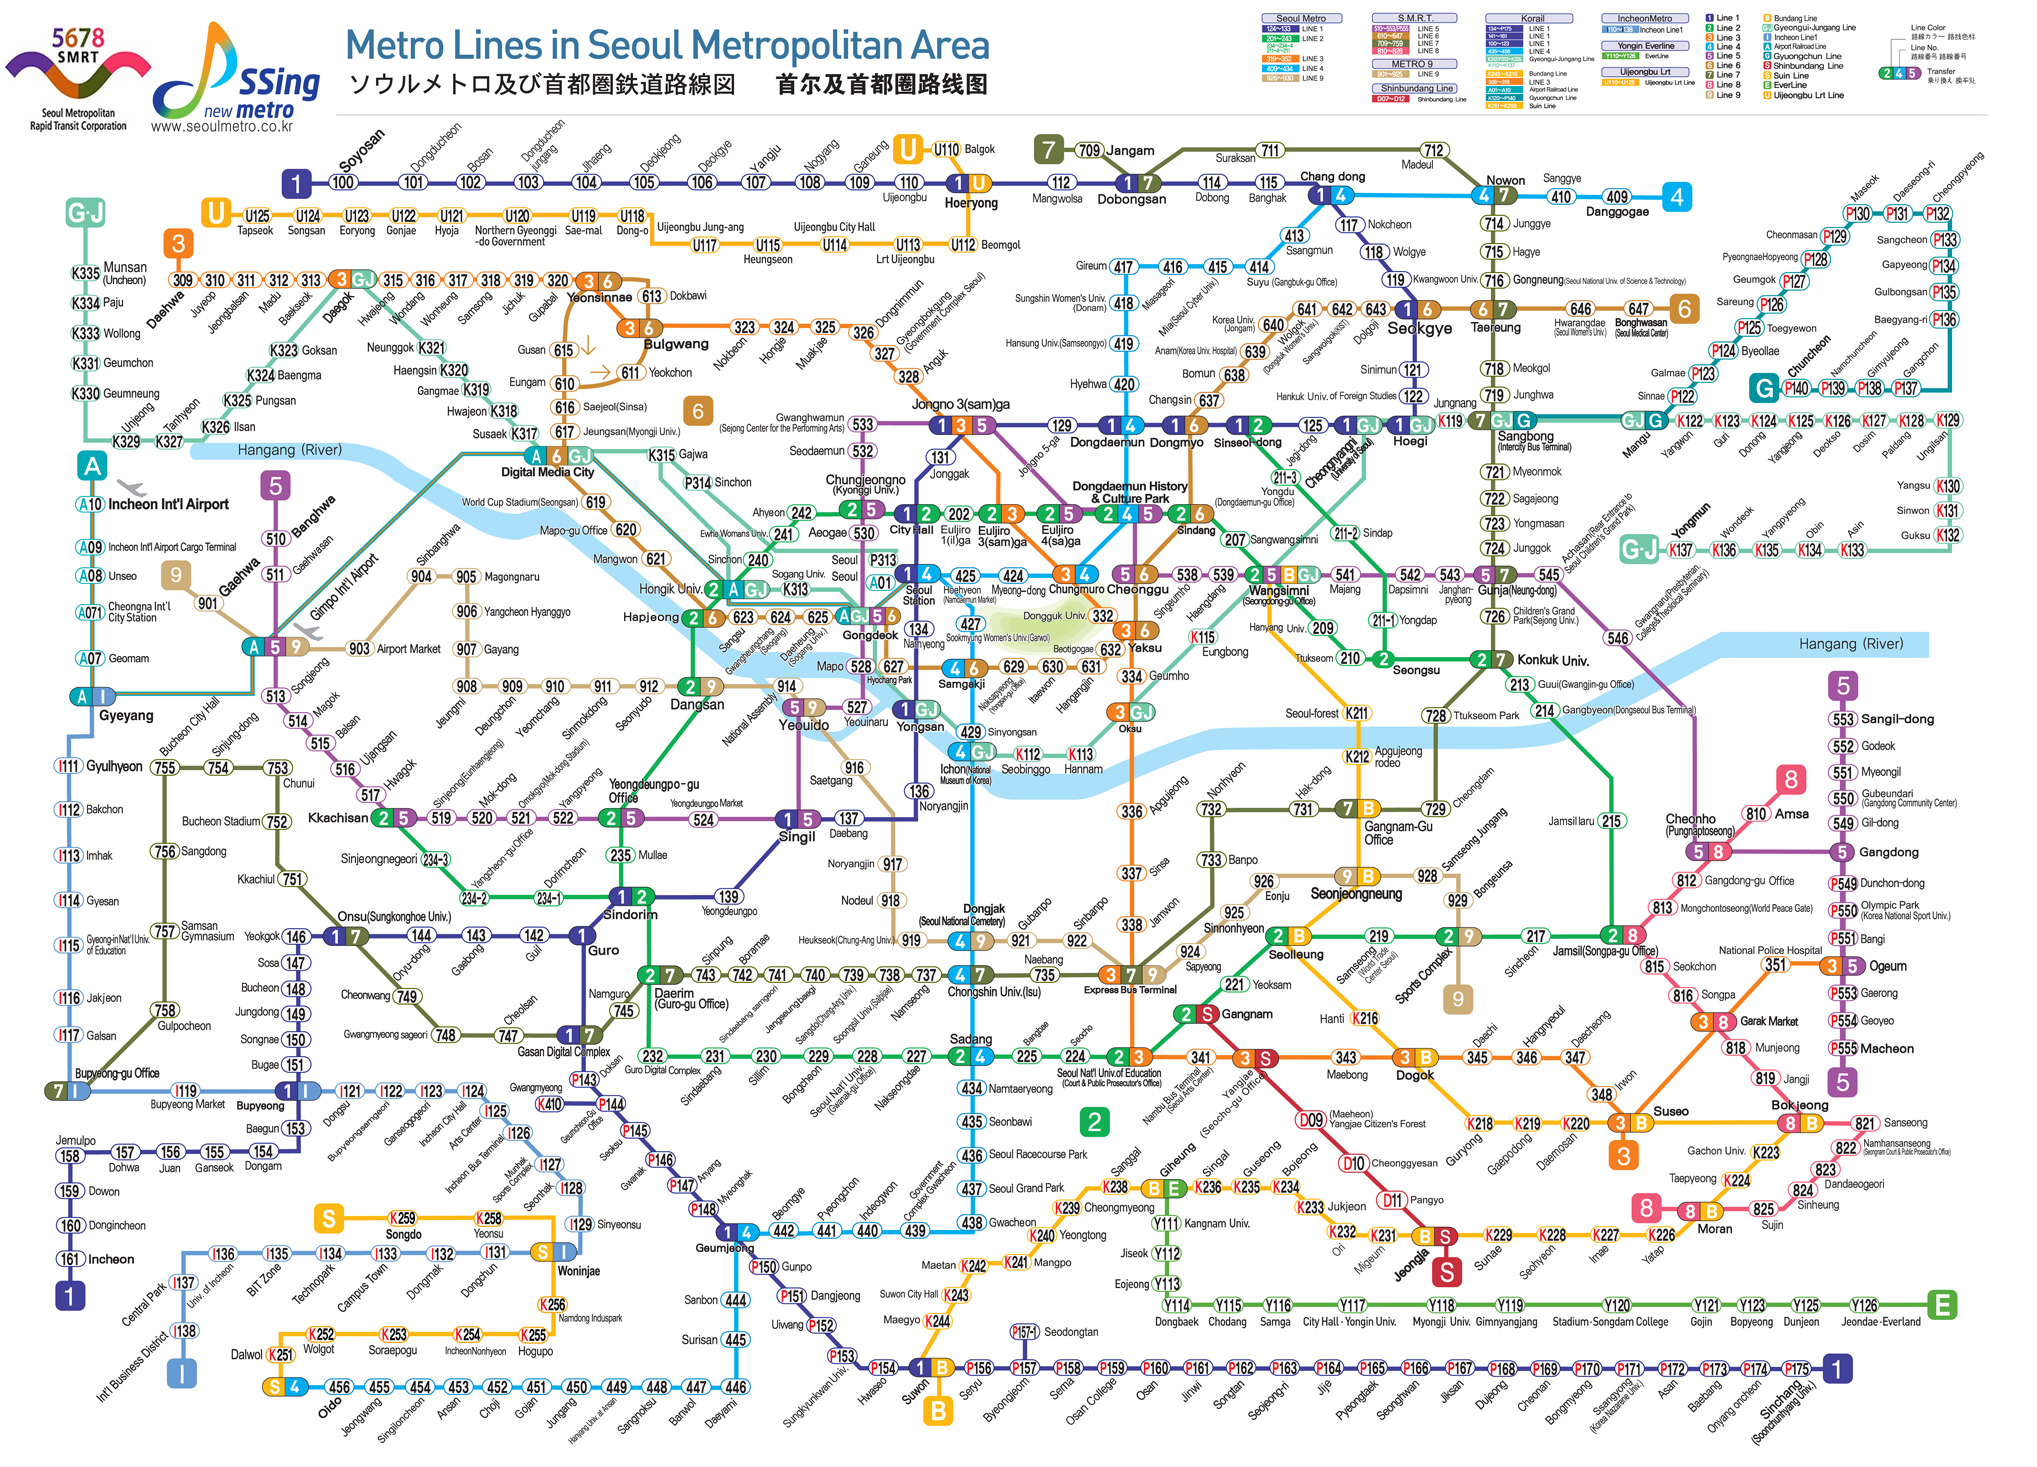 interactive london underground map with Map Of Seoul Subway System on Melbournes Future Train Maps  pared To New York London And Paris 20150618 Ghqzin together with Chicago Pedway Map furthermore O2 London Arena In The Round also Getting Around London With A Toddler moreover Max.